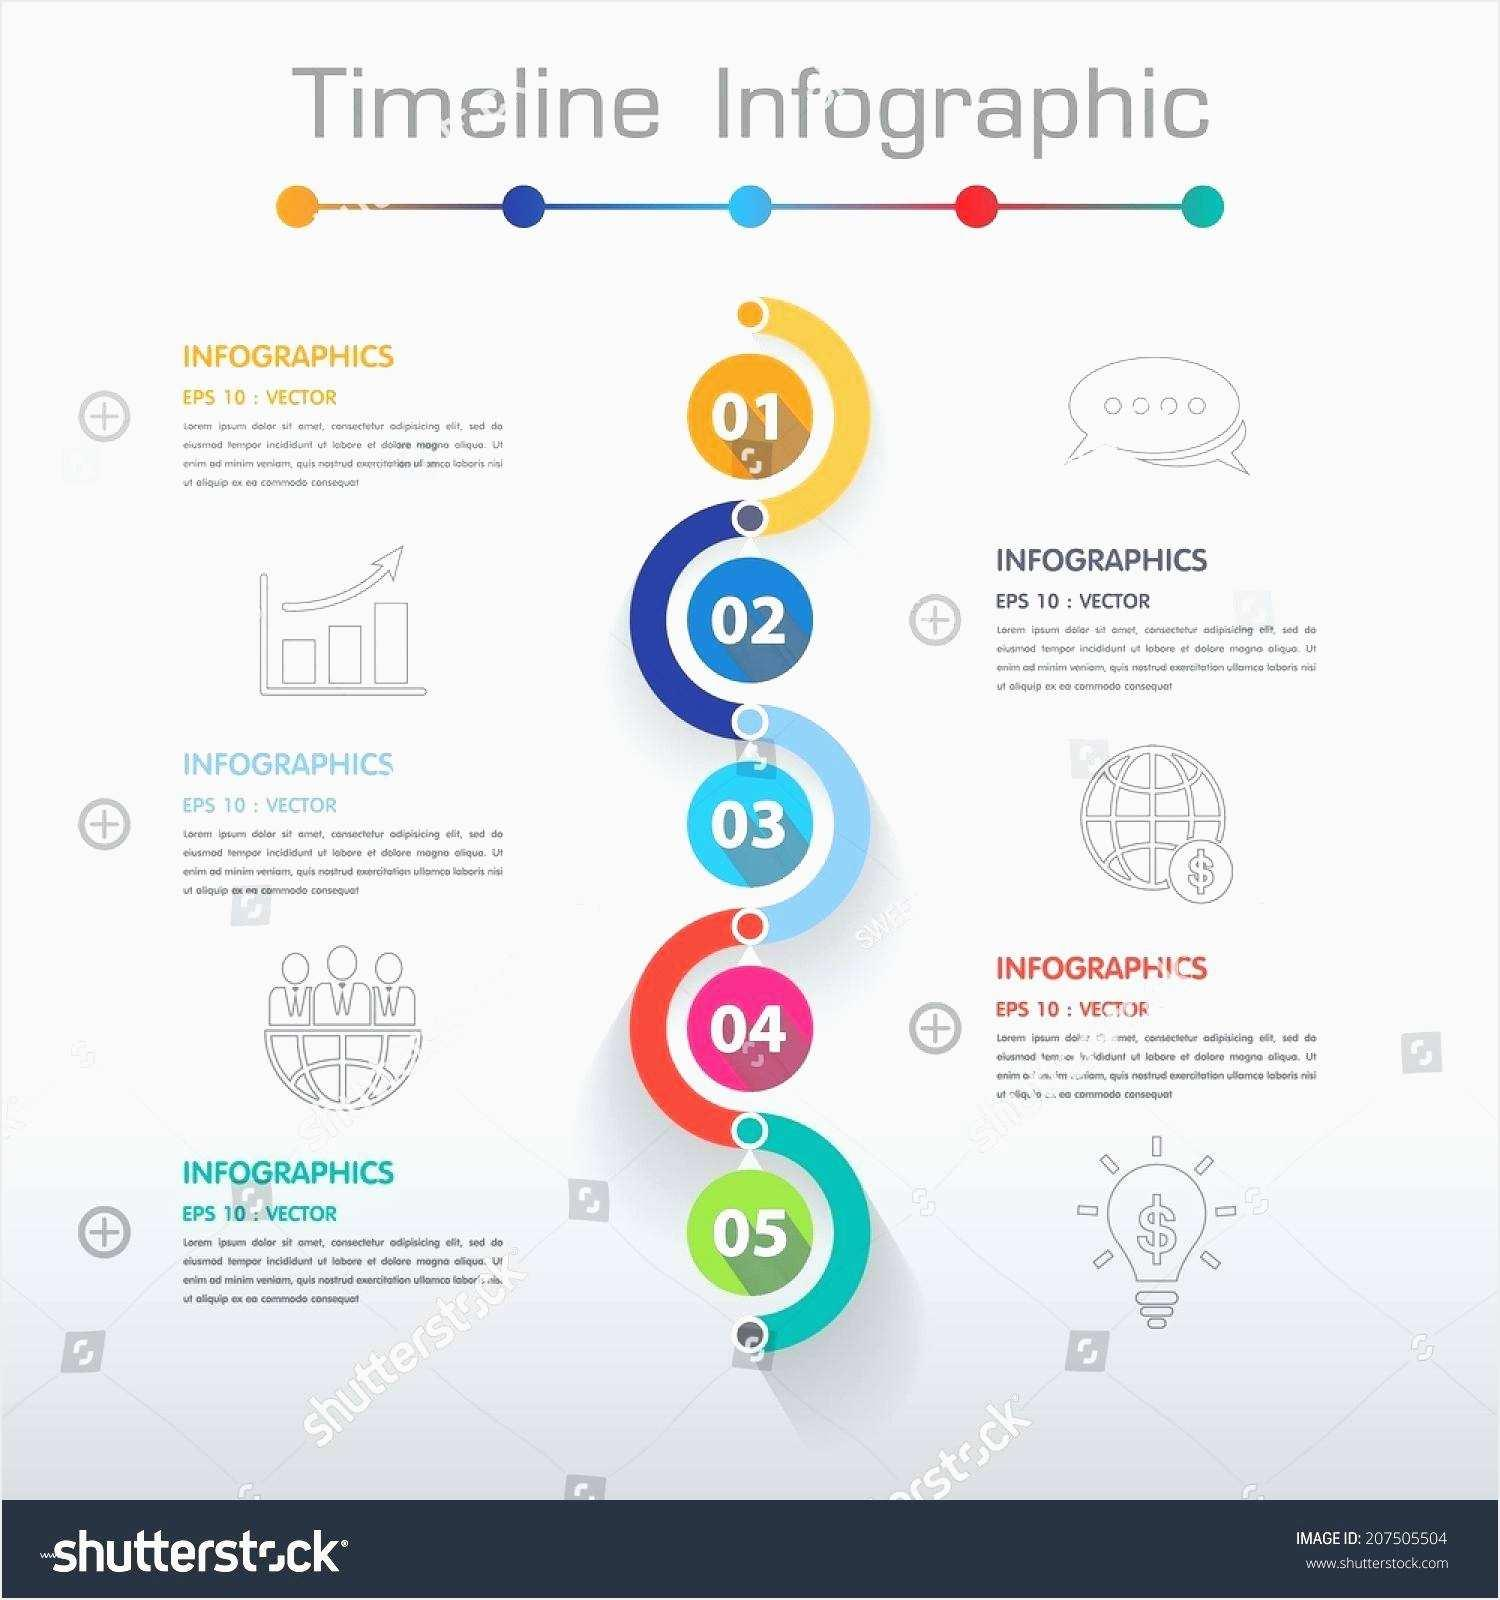 Free Visio Timeline Templates - Templates #76479 | Resume Examples